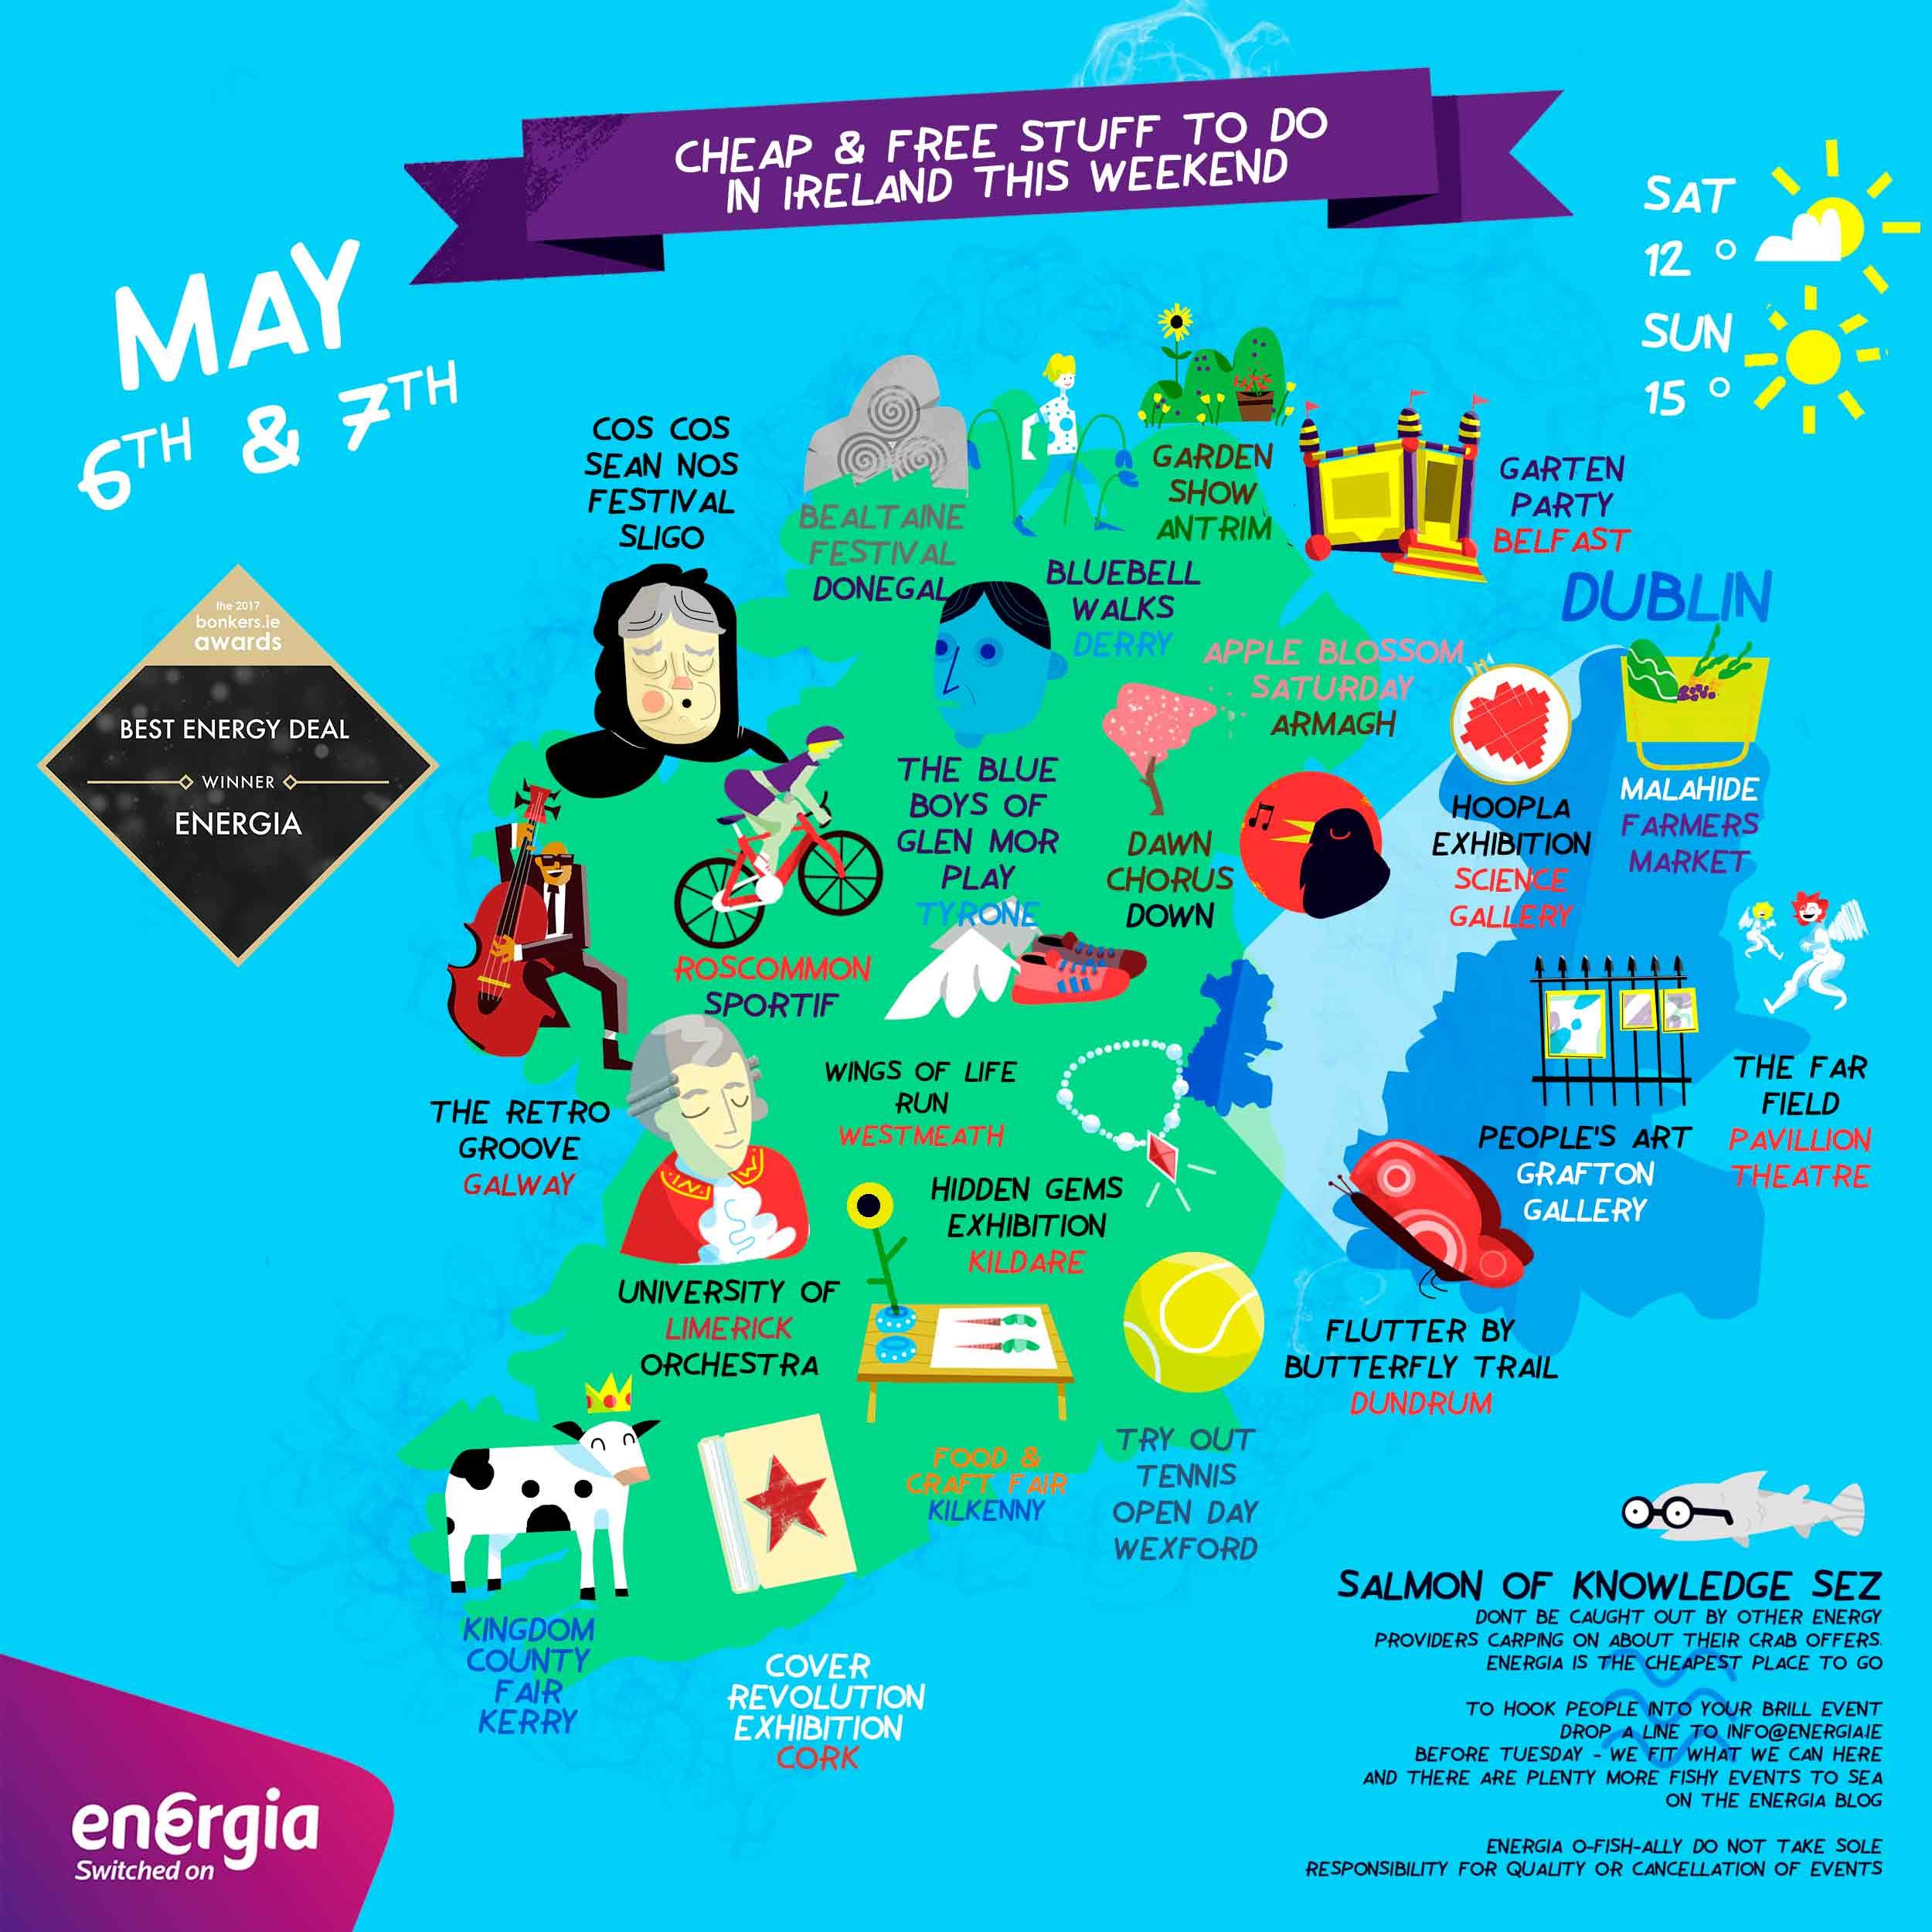 Clever Map of cheap and free things to do this weekend 6-7th May